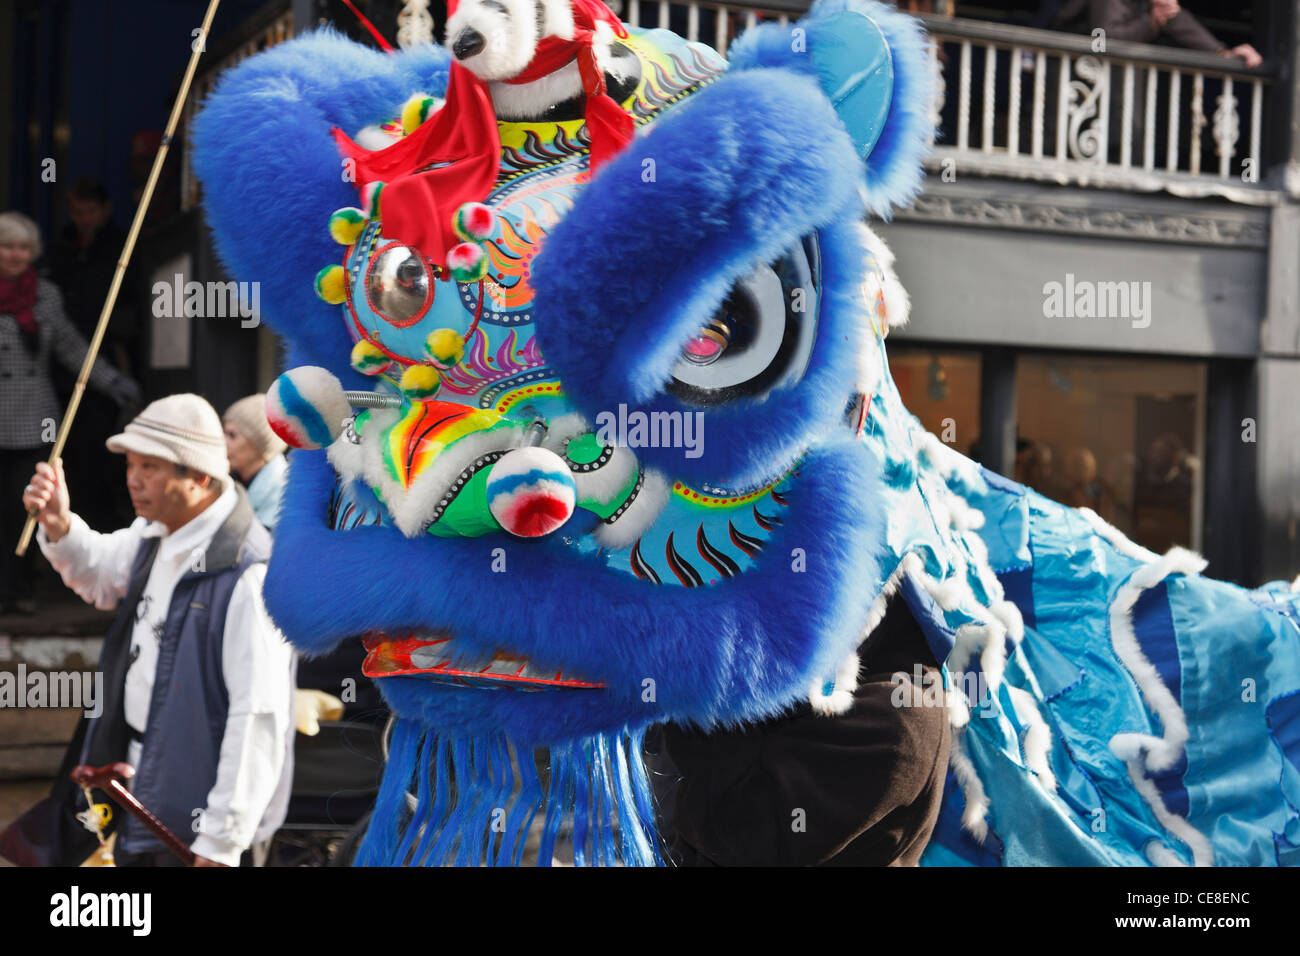 Chinese New Year of the dragon parade in the city street. Chester, Cheshire, England, UK. - Stock Image